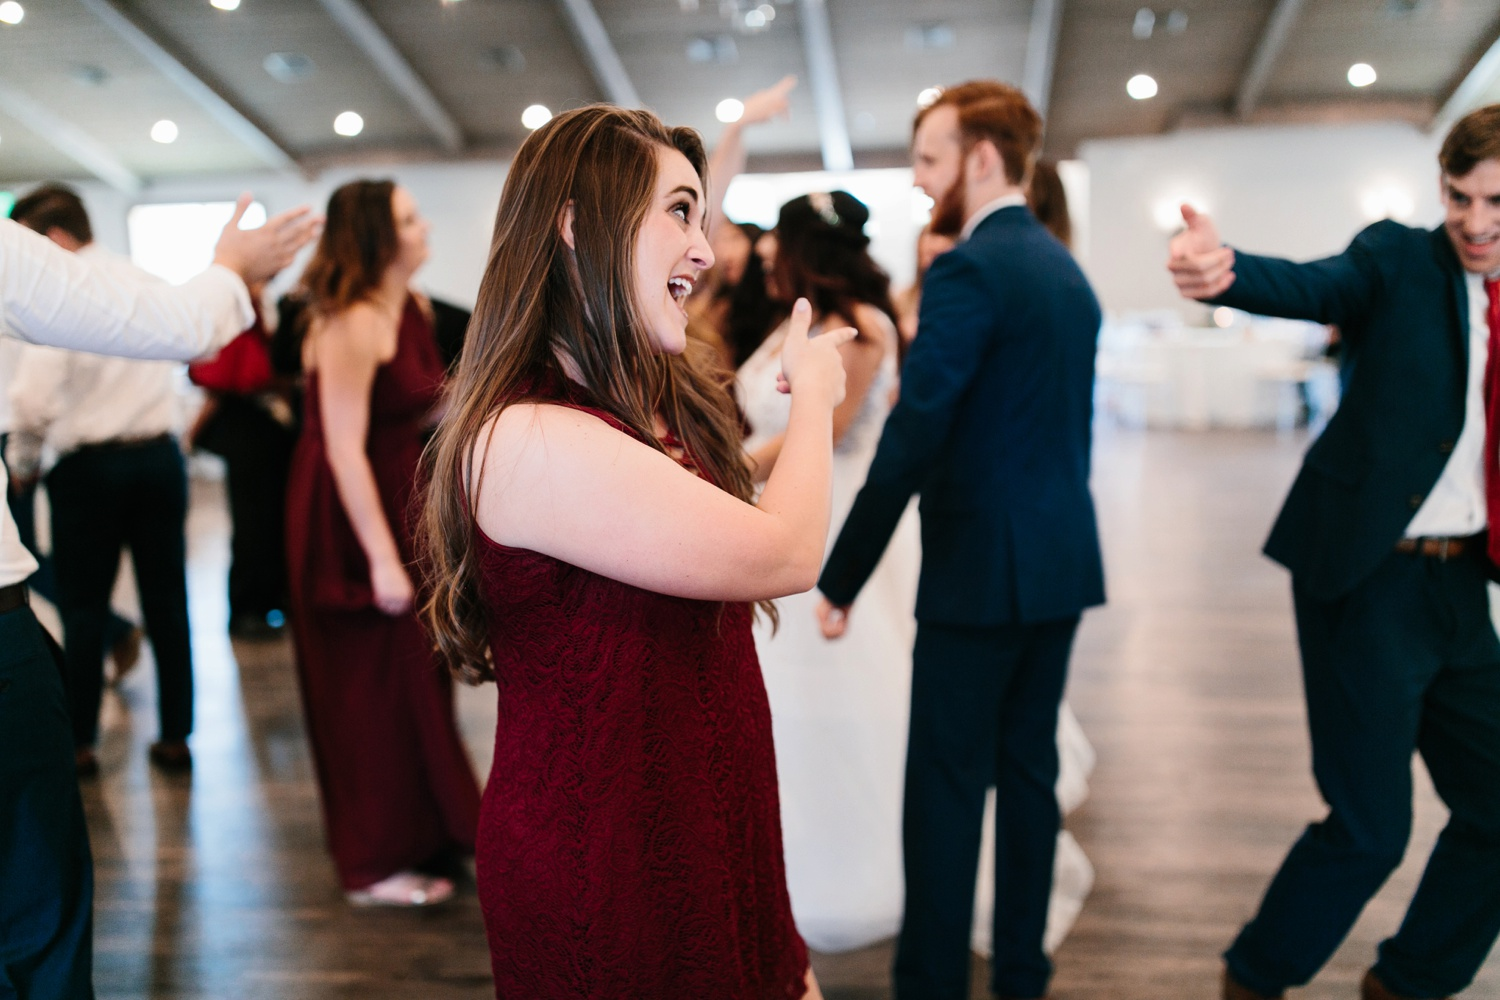 Grant + Lysette | a vibrant, deep burgundy and navy, and mixed metals wedding at Hidden Pines Chapel by North Texas Wedding Photographer Rachel Meagan Photography 181